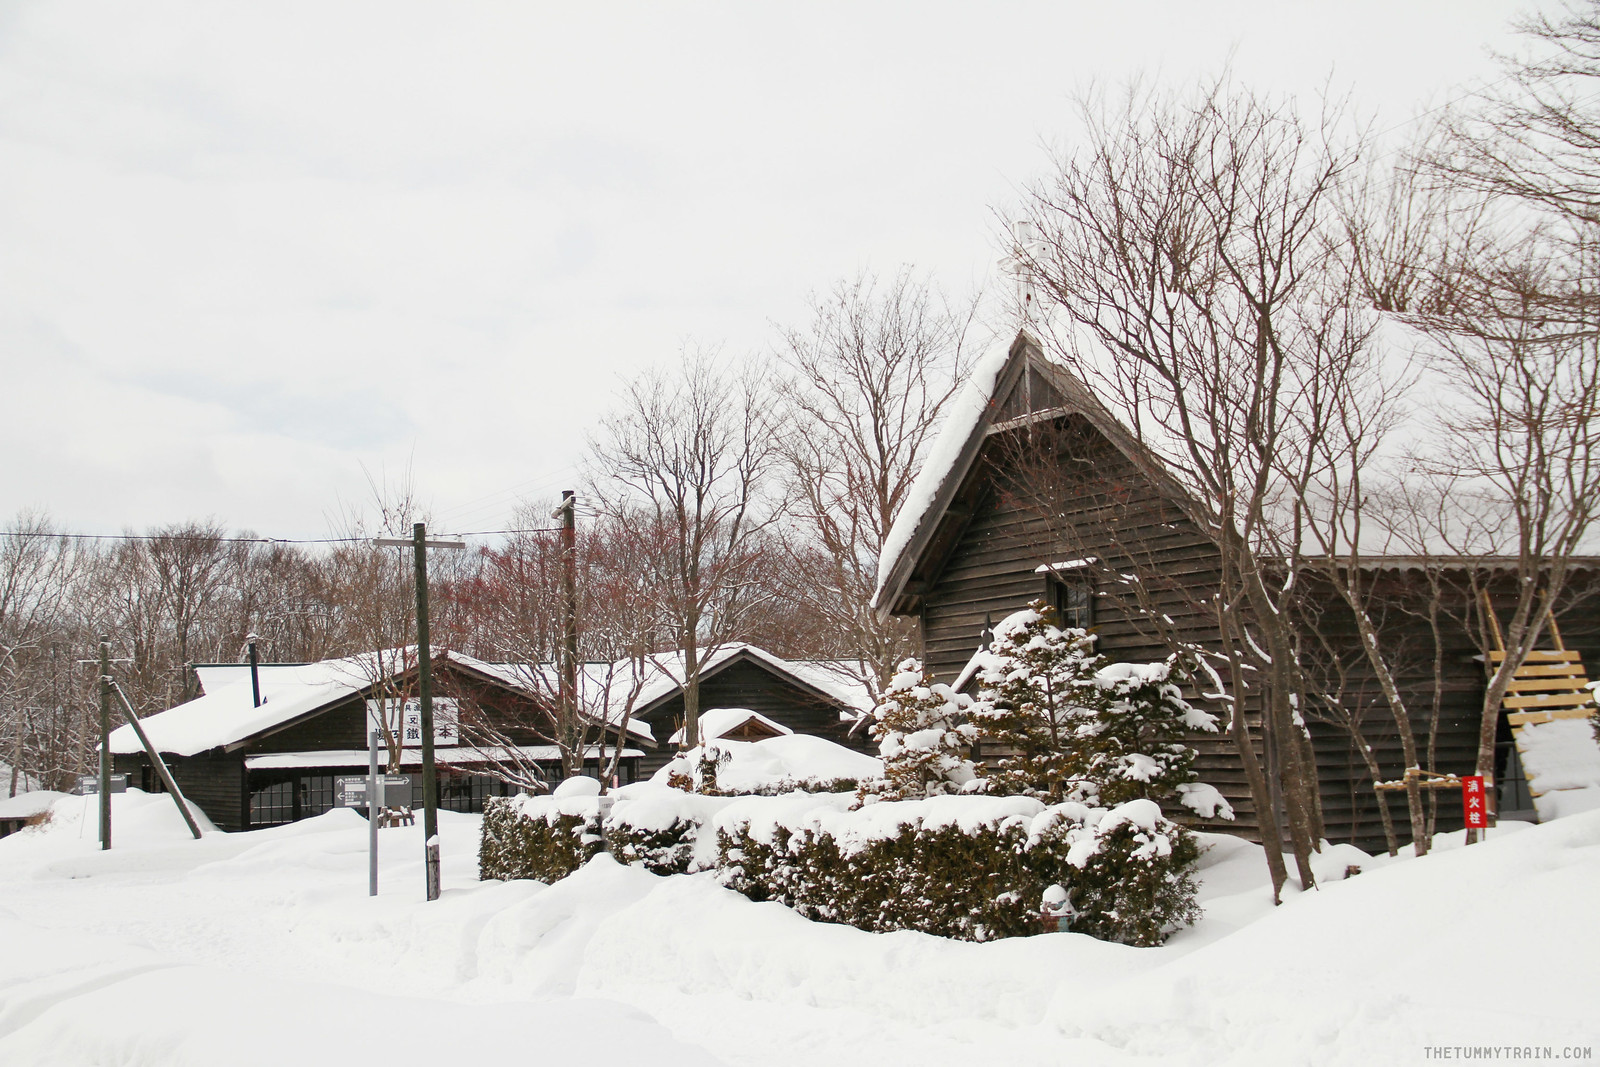 32072491164 ba4126f57a h - Sapporo Travel Diary 2017: The Magical and Historical Village of Hokkaido